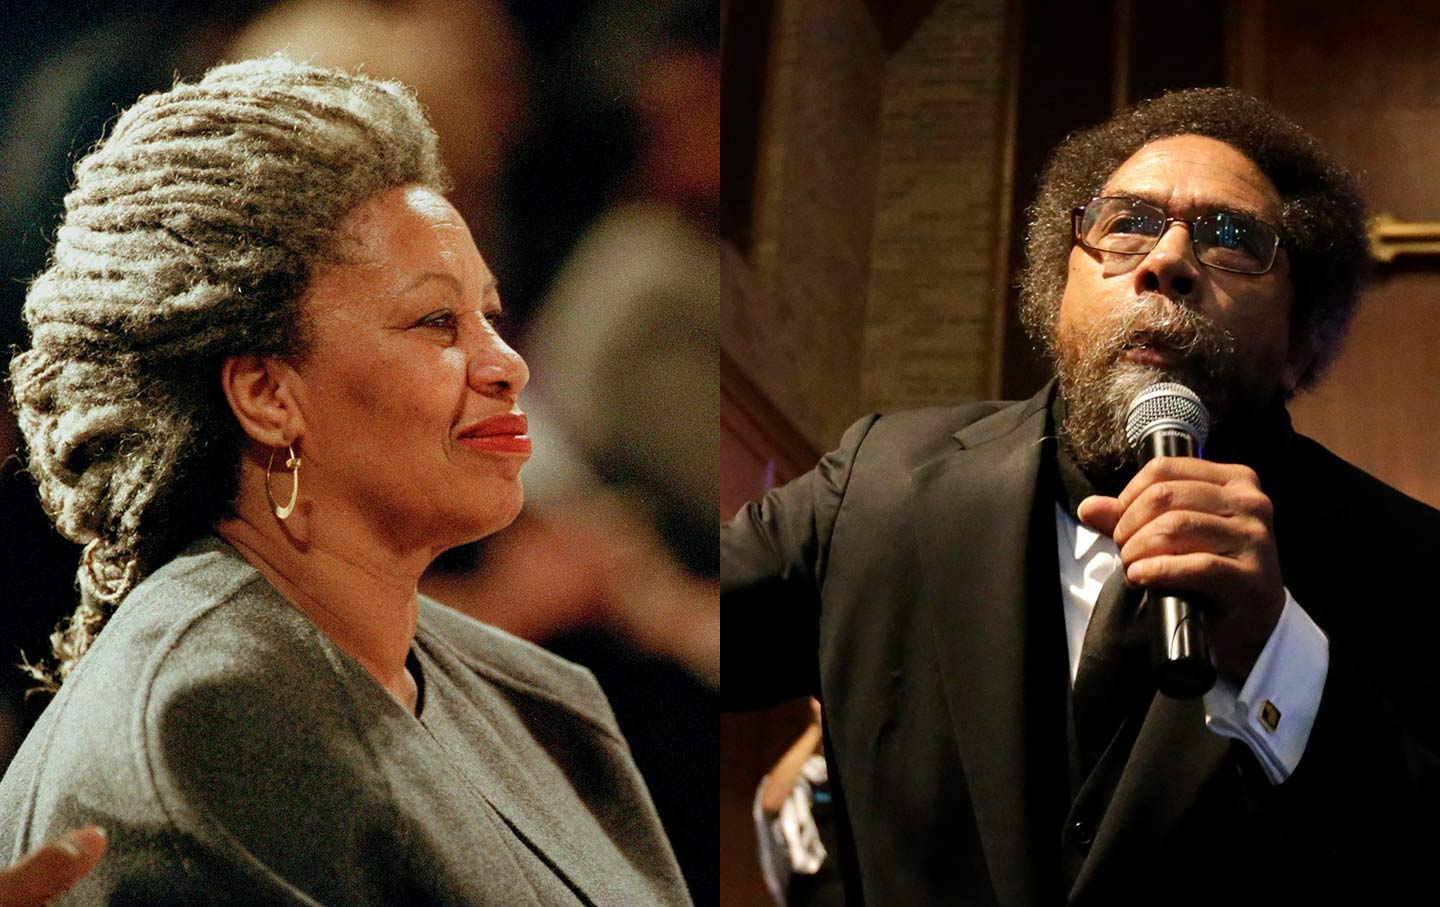 'We Better Do Something': Toni Morrison and Cornel West in Conversation